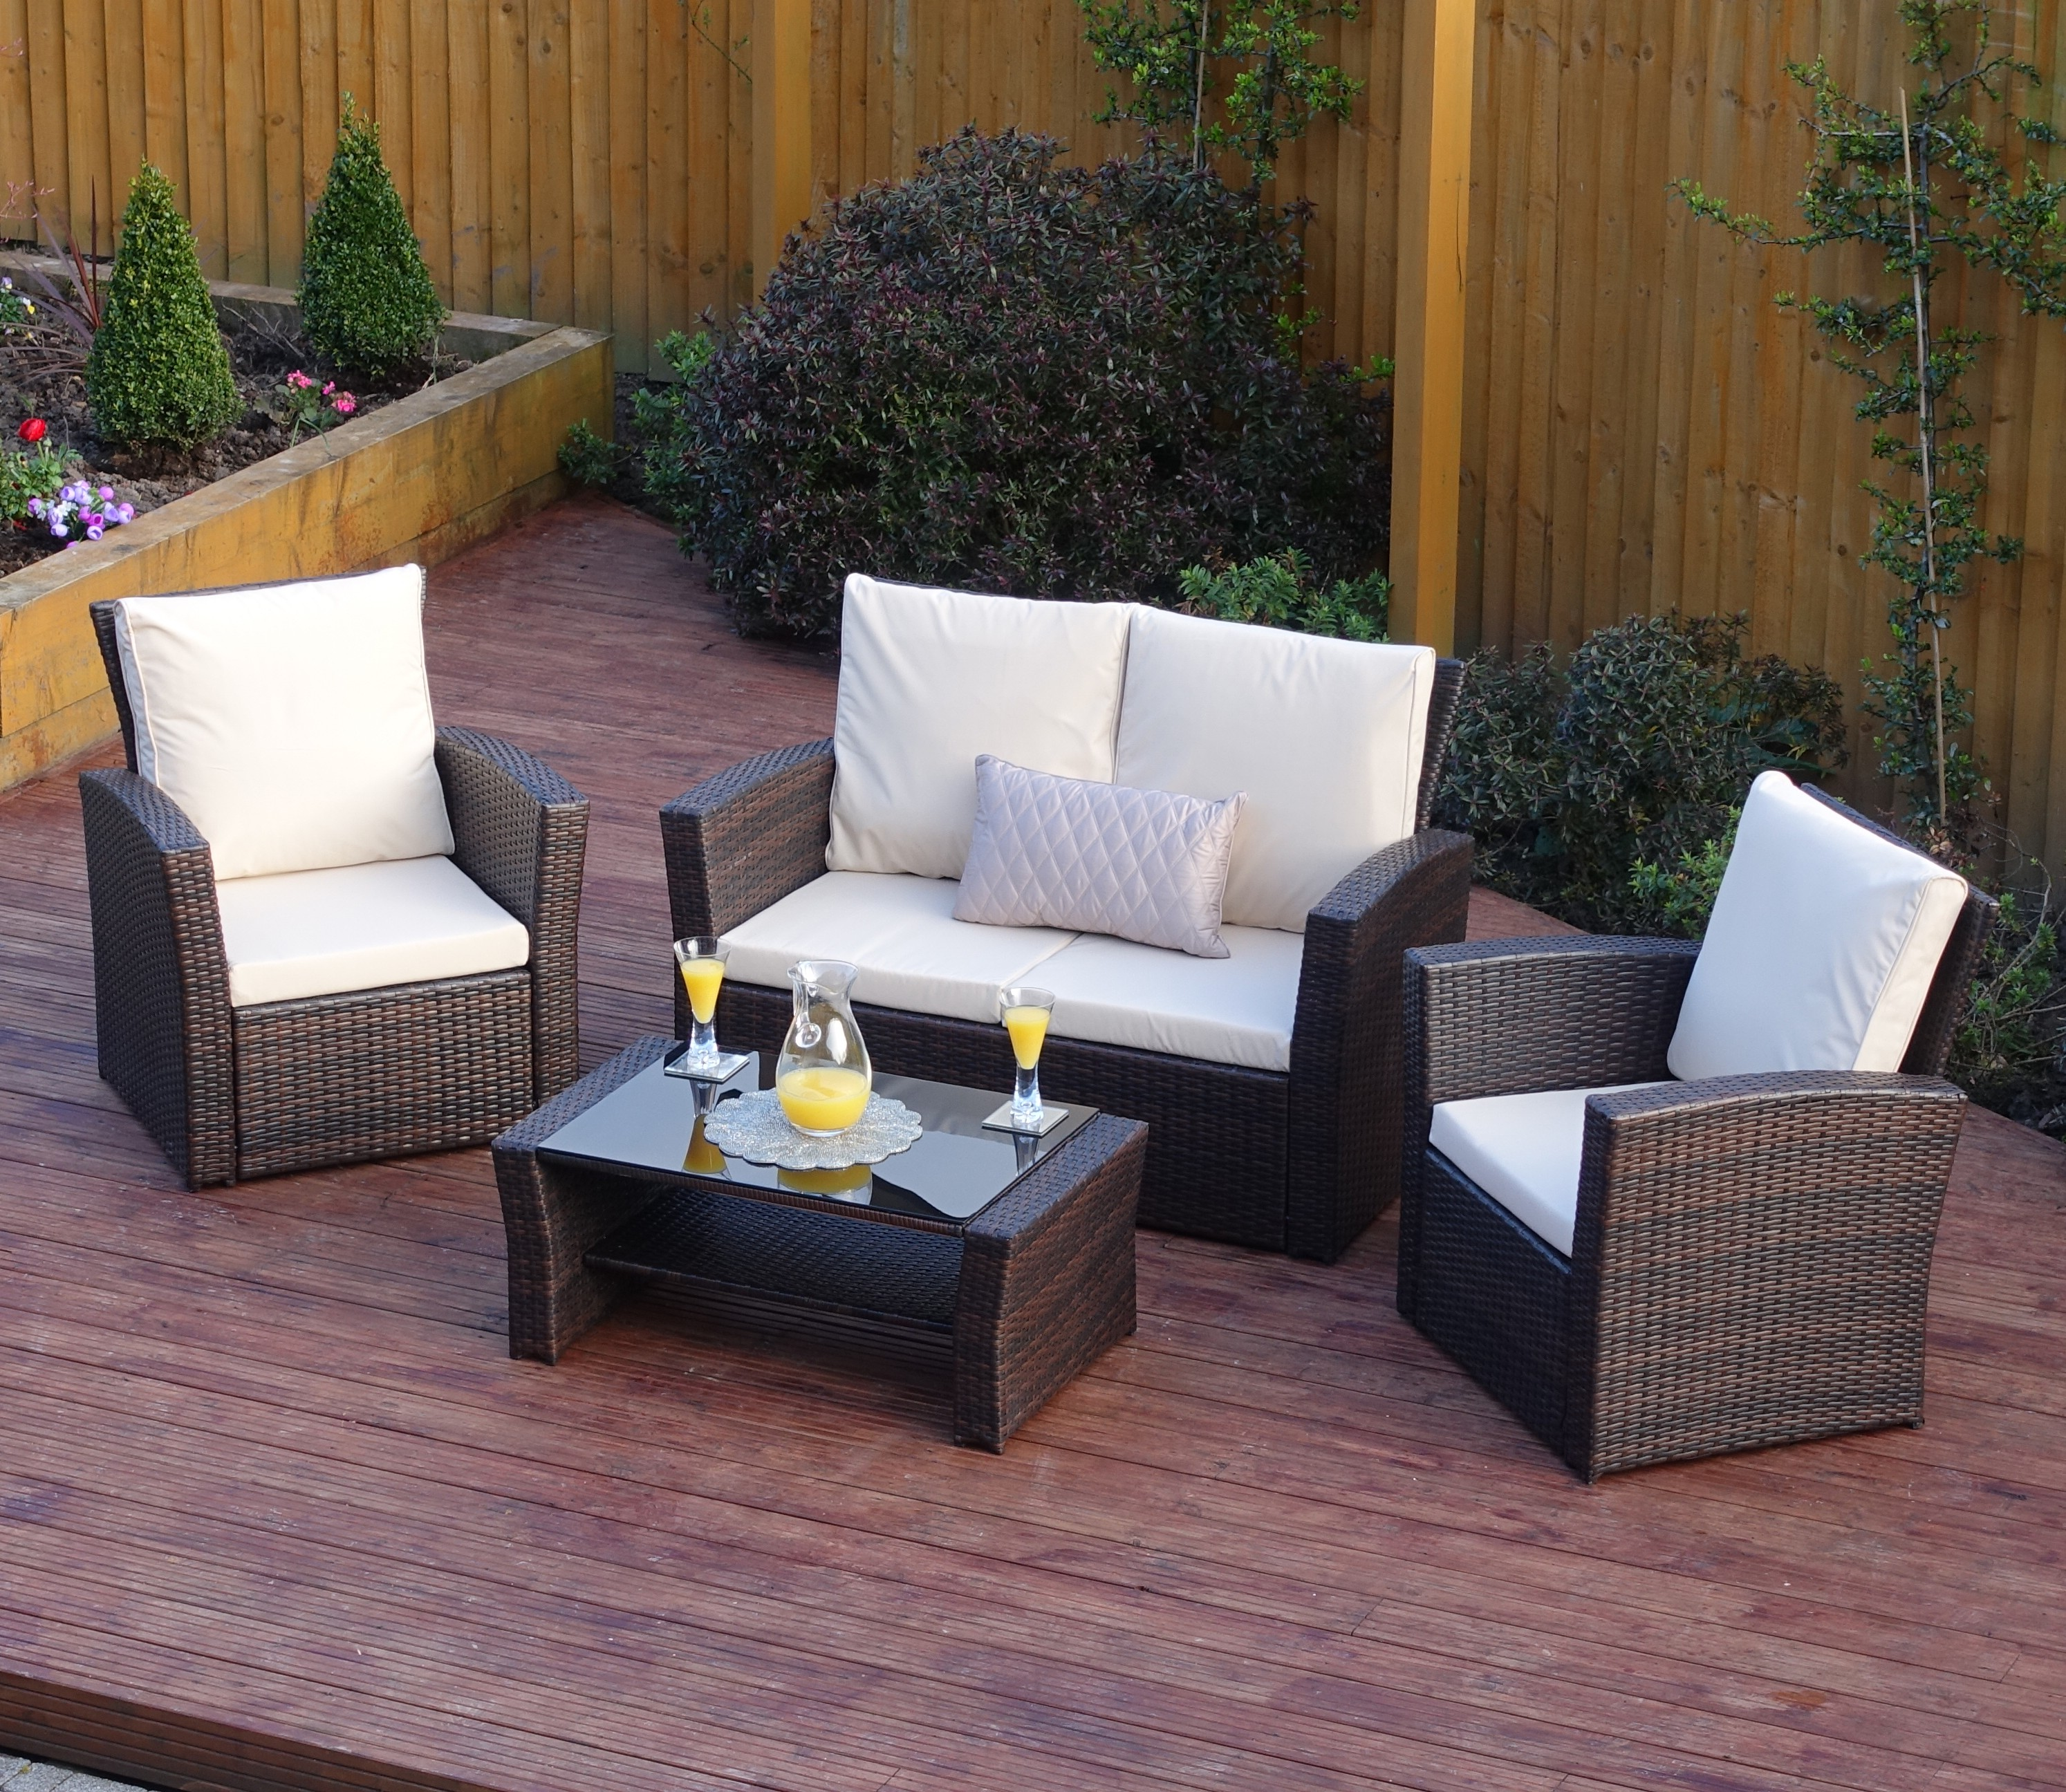 4 Piece Algarve Rattan Sofa Set For Patios Conservatories